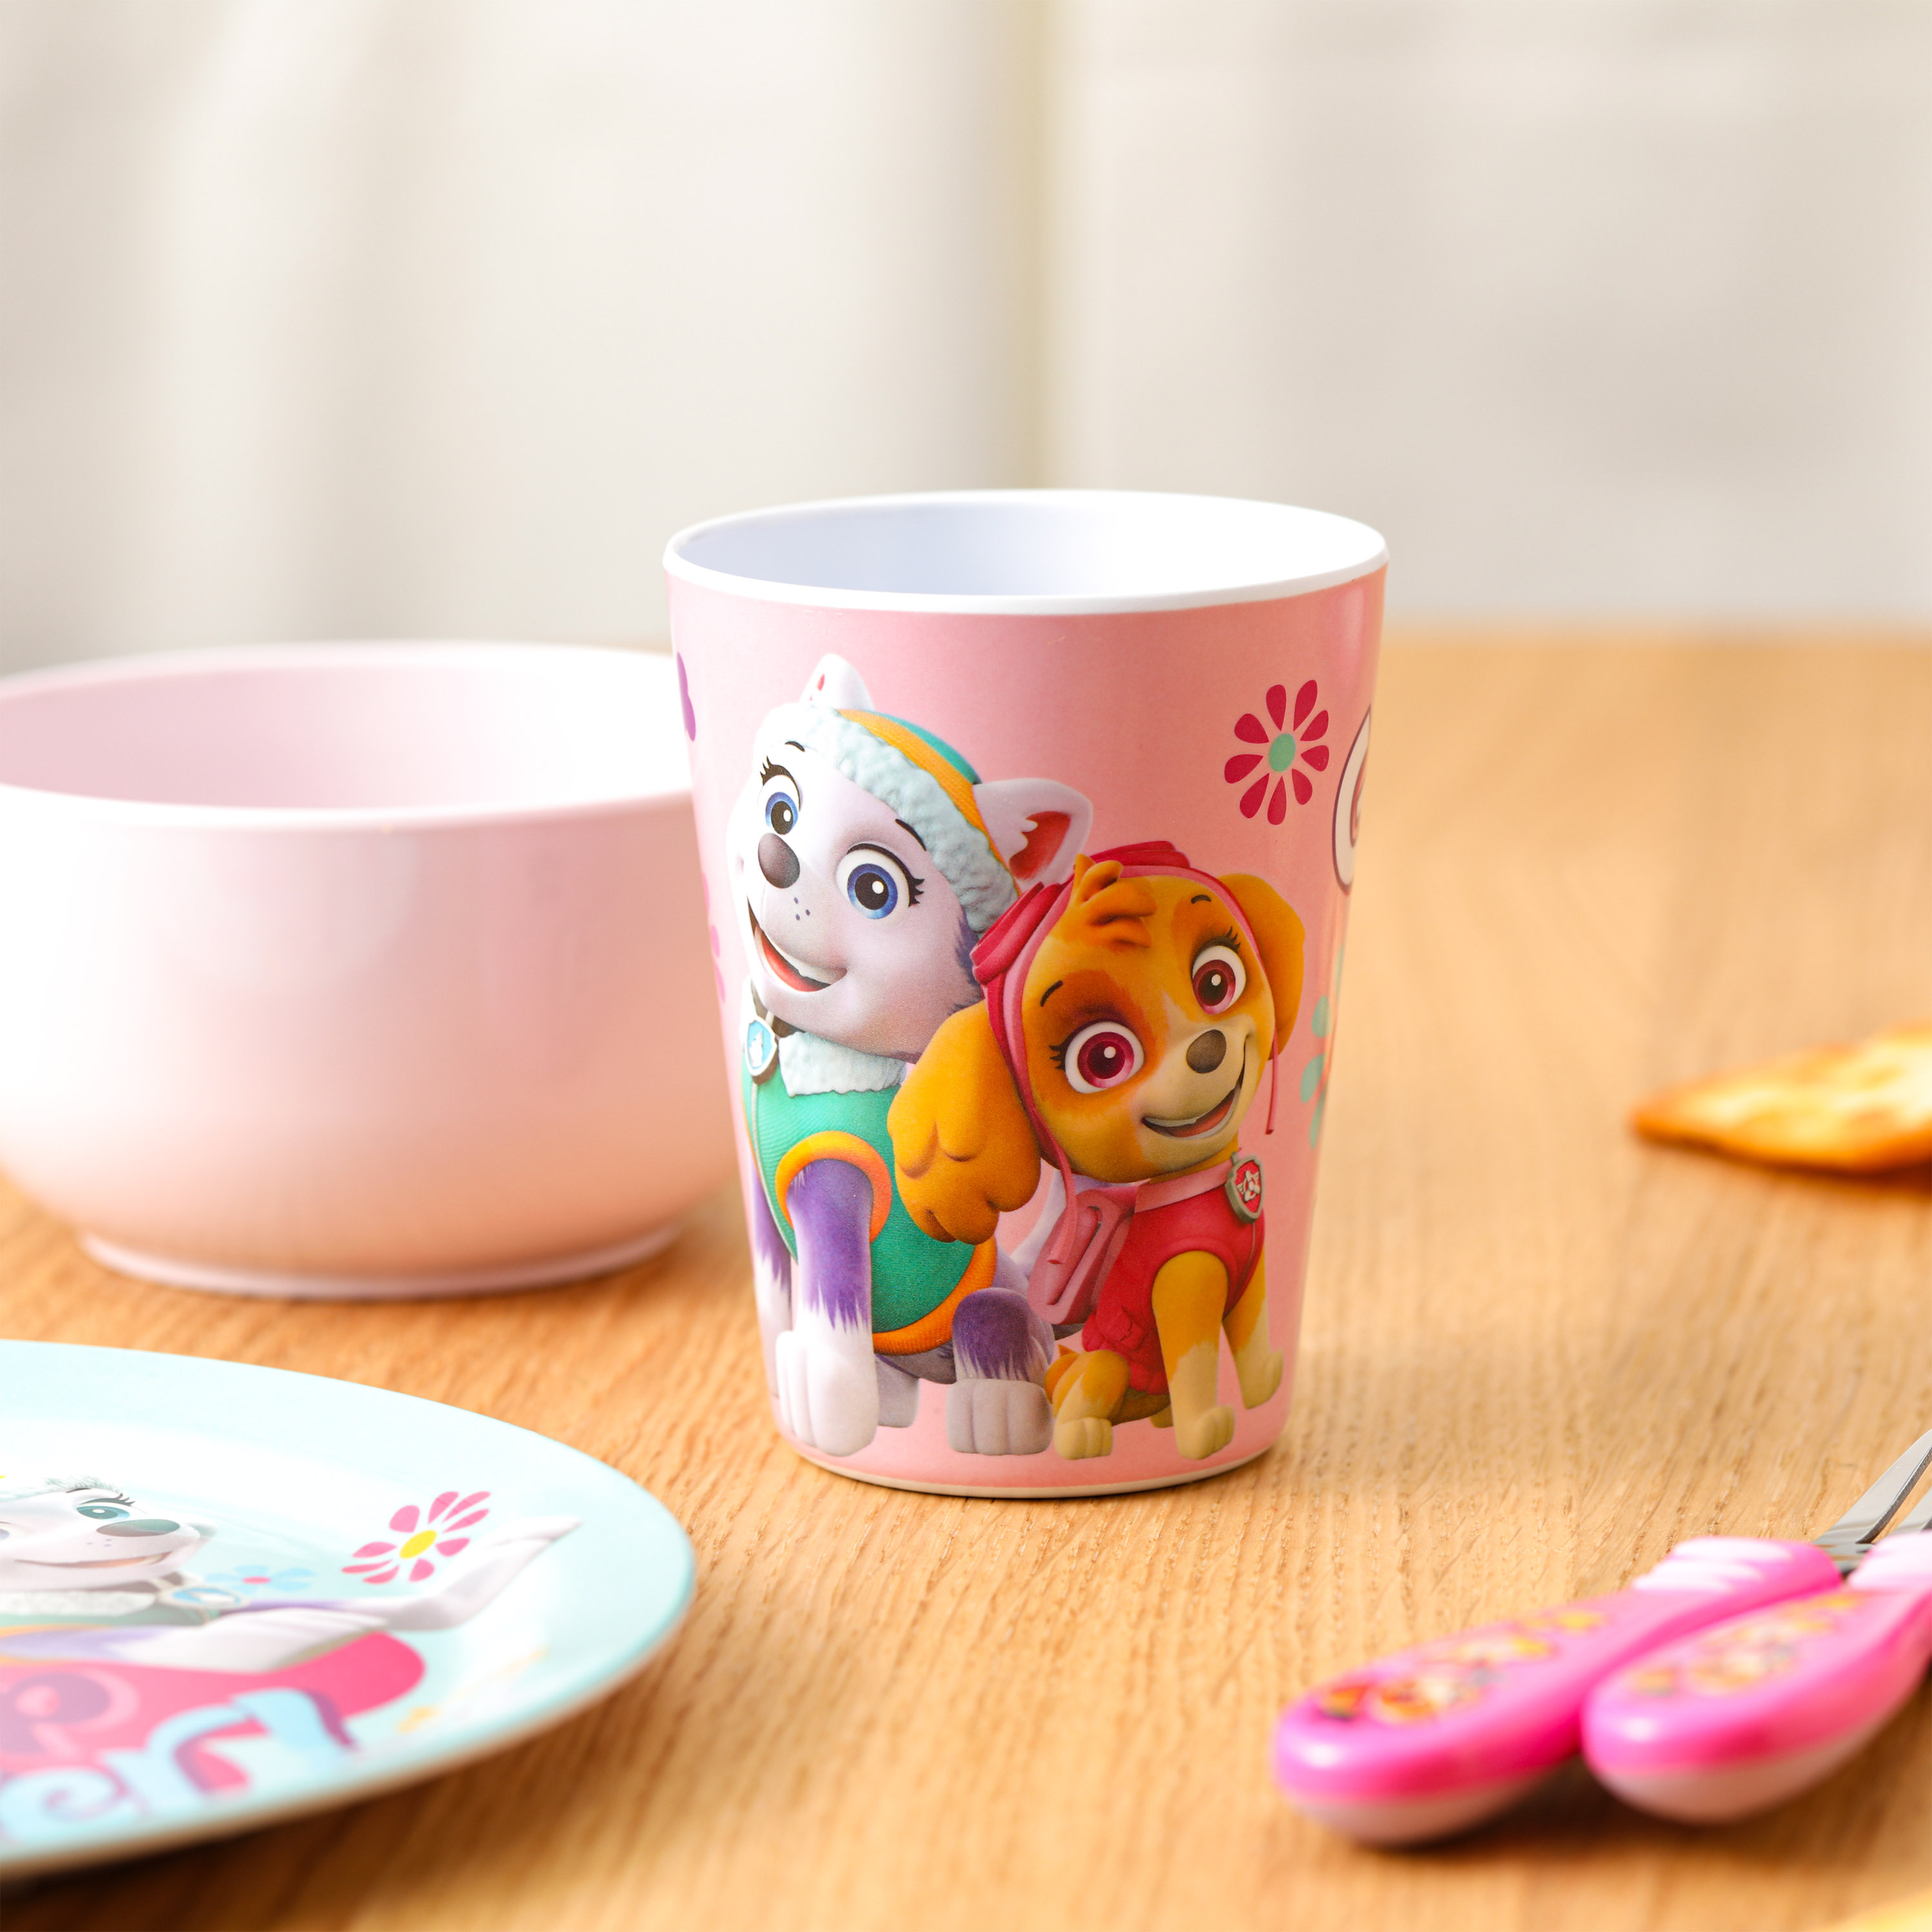 Paw Patrol Dinnerware Set, Skye and Everest, 5-piece set slideshow image 3